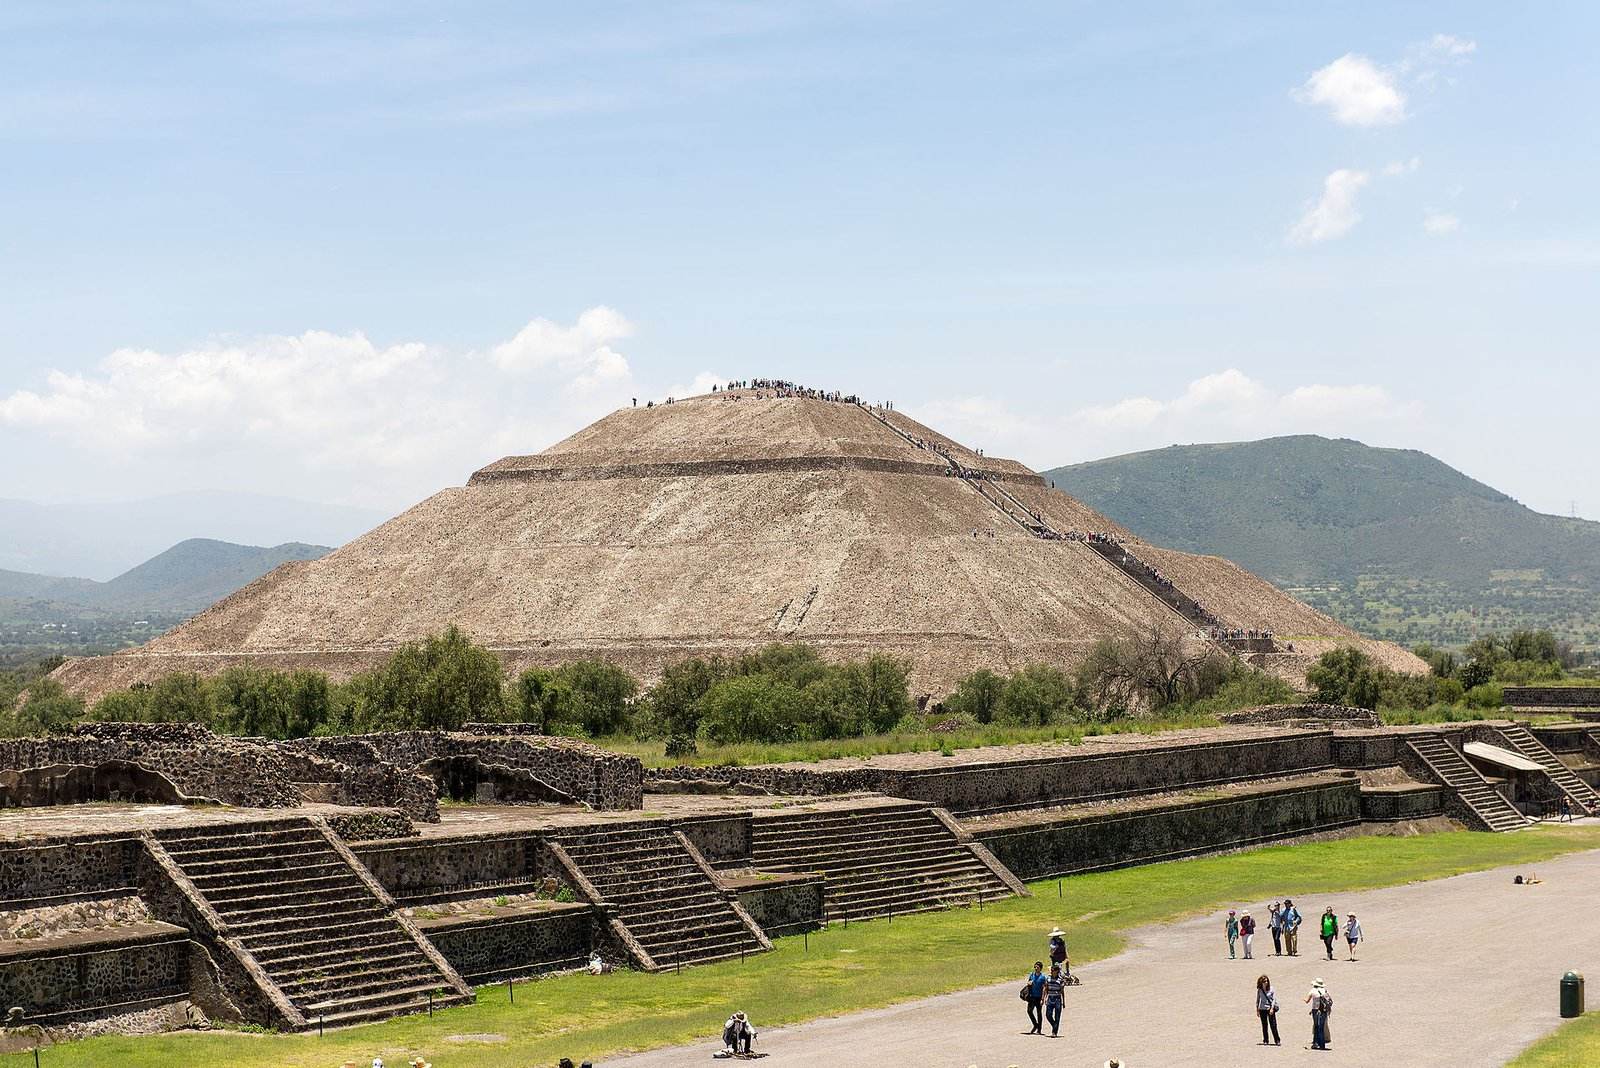 Mexico's Ancient Inhabitants Moved Land and Bent Rivers to Build Teotihuacán